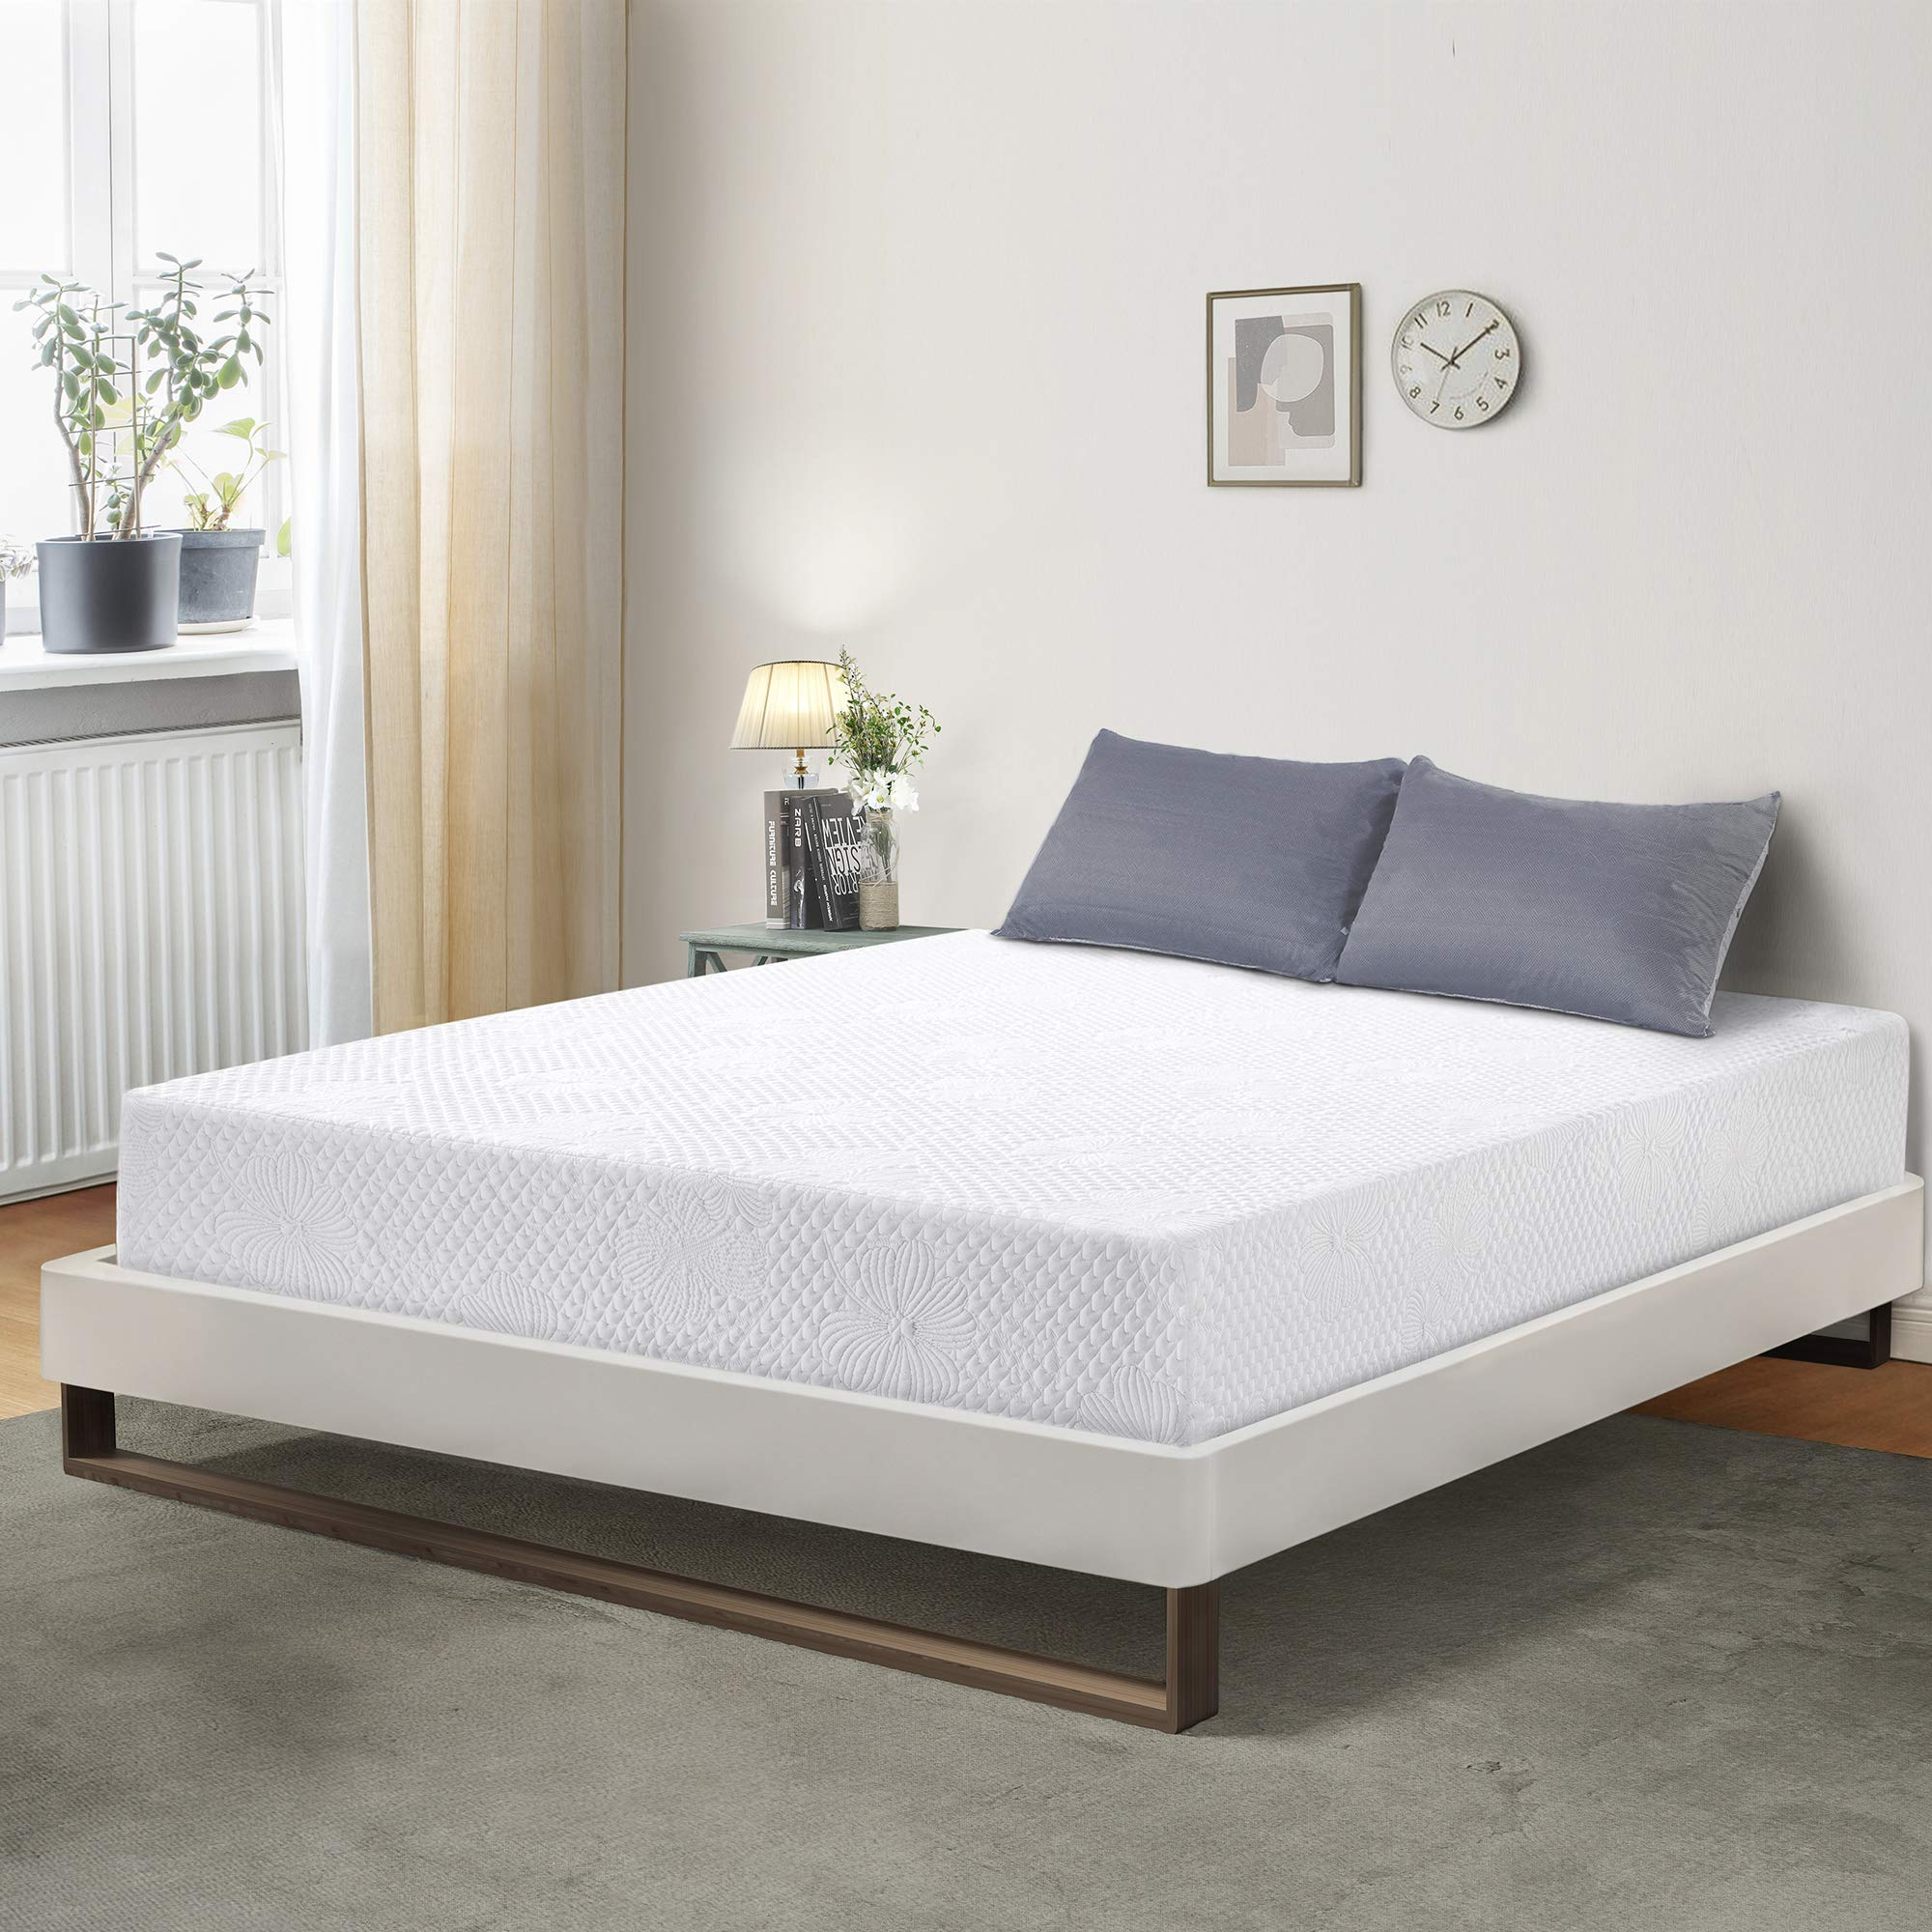 PrimaSleep 6 Inch Enhanced Air Ventilated Mattress Queen by PrimaSleep